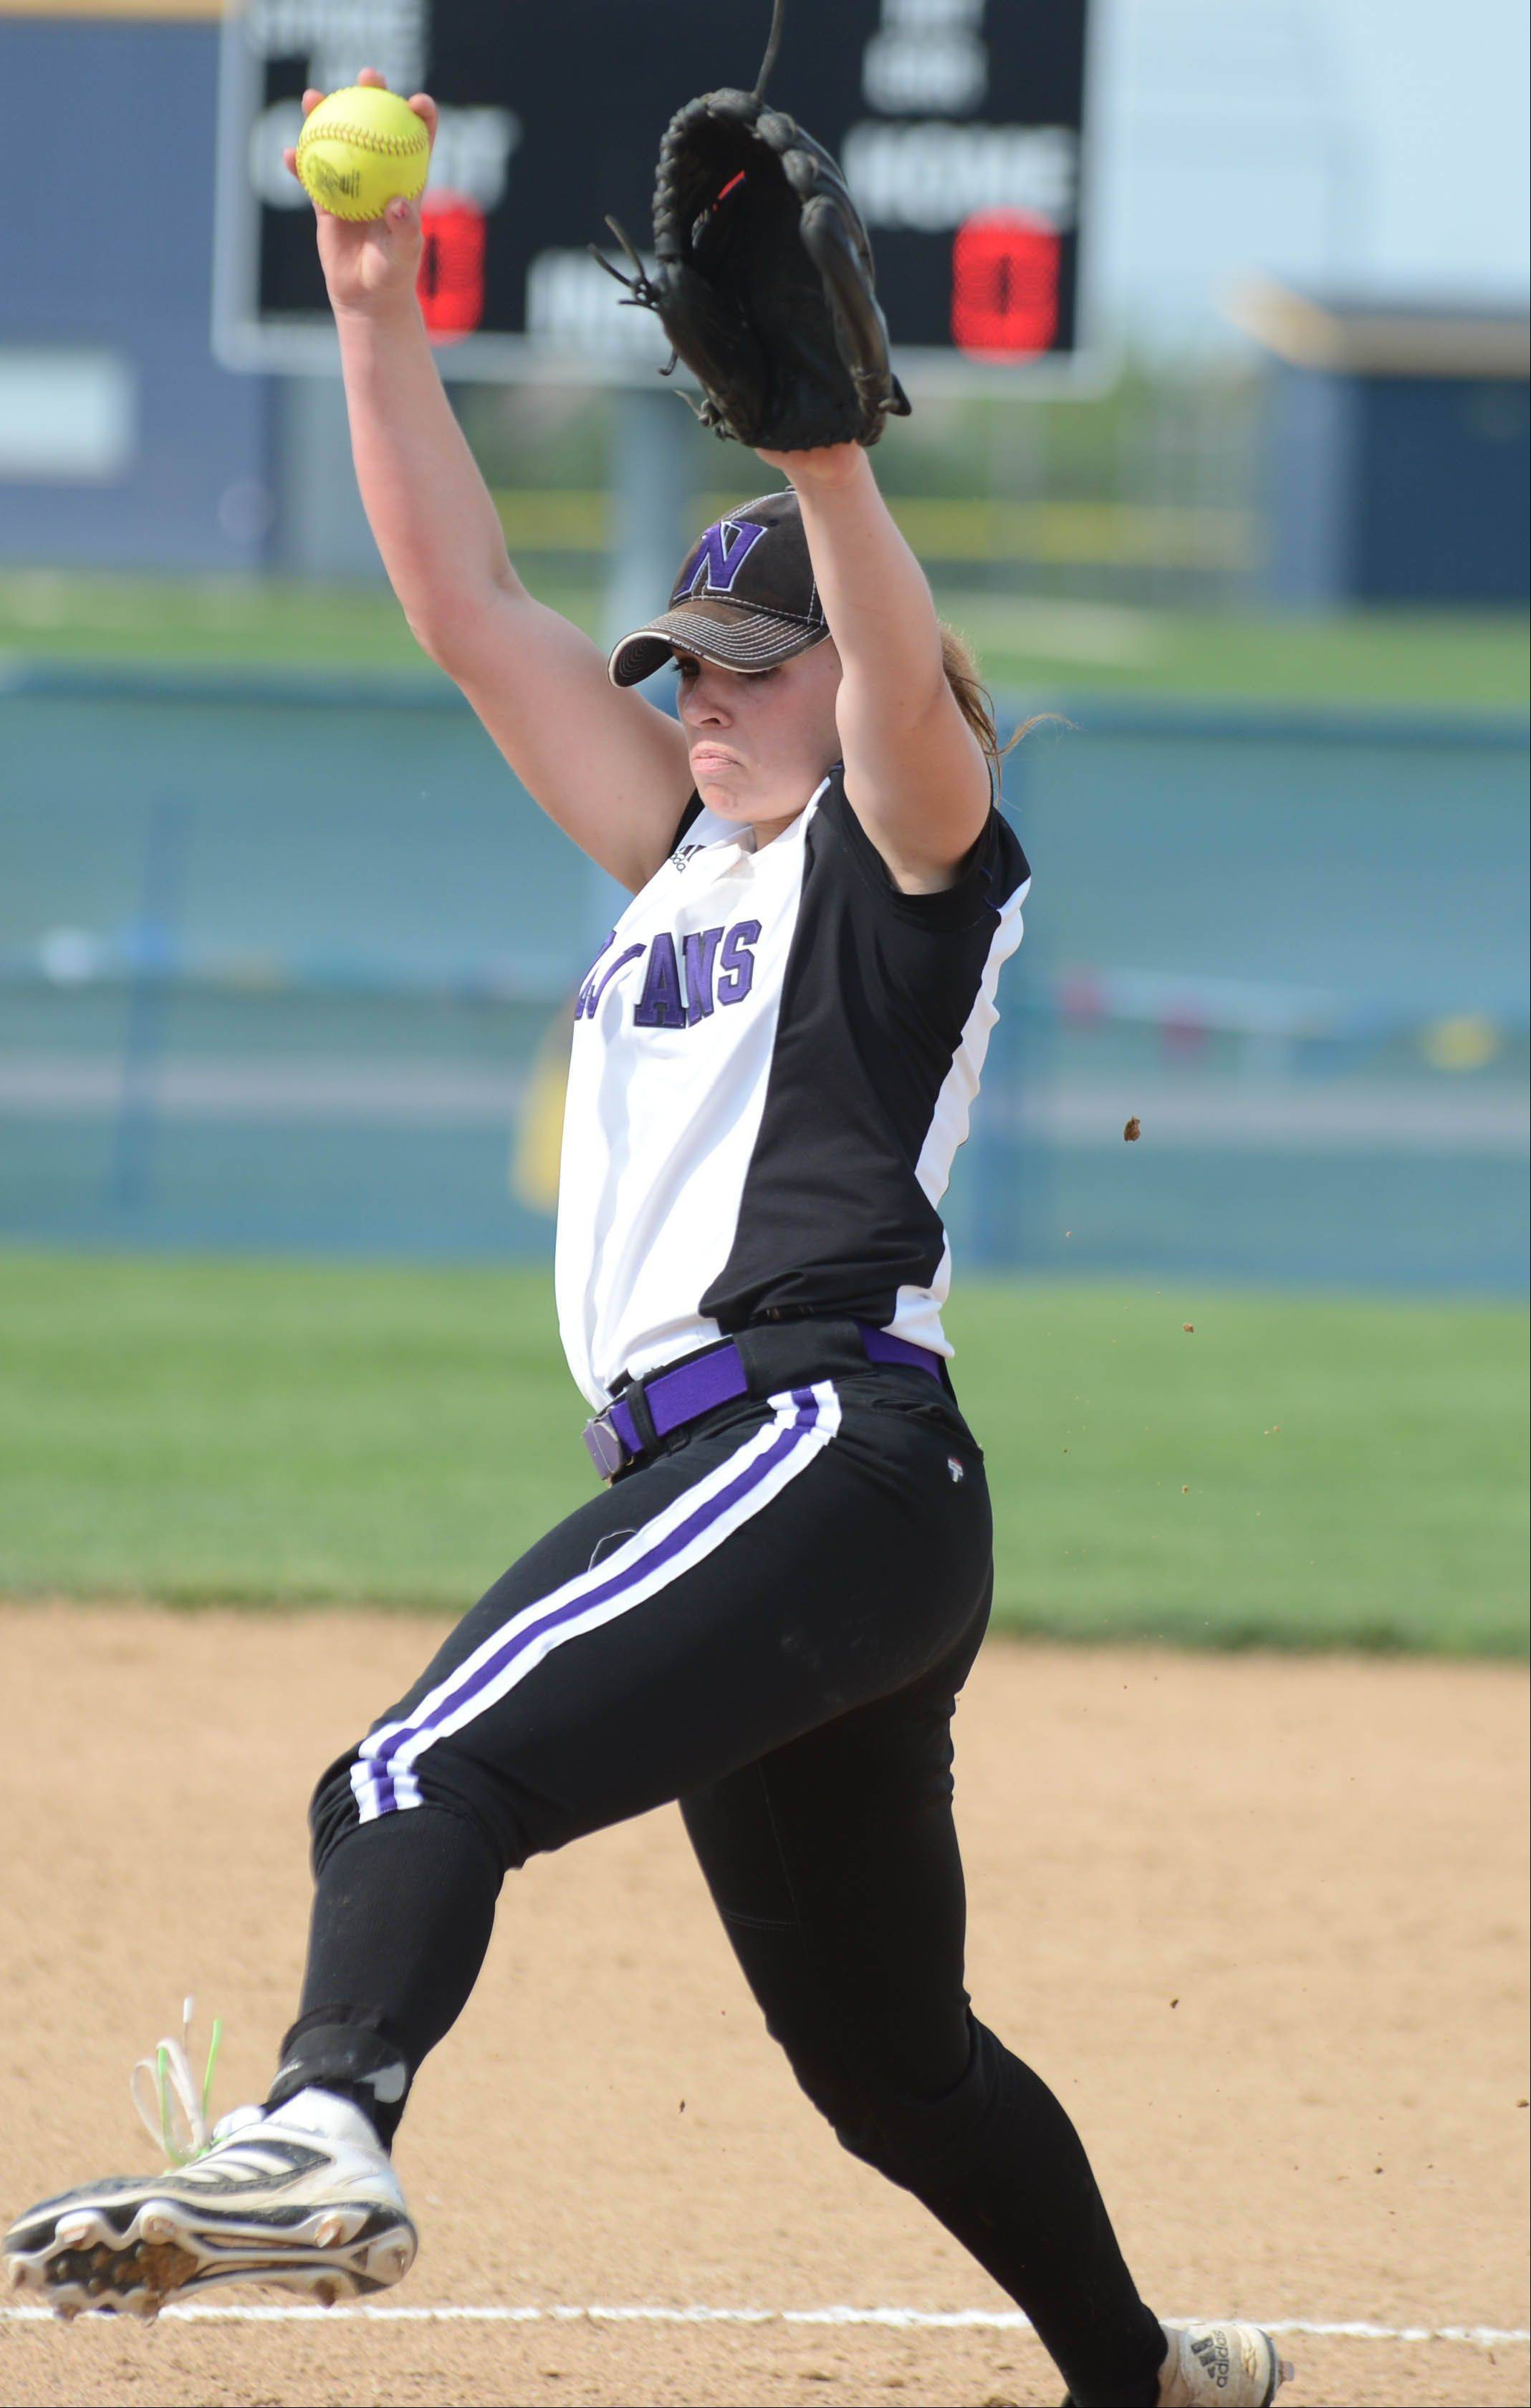 Elaine Heflin of Downers Grove North .